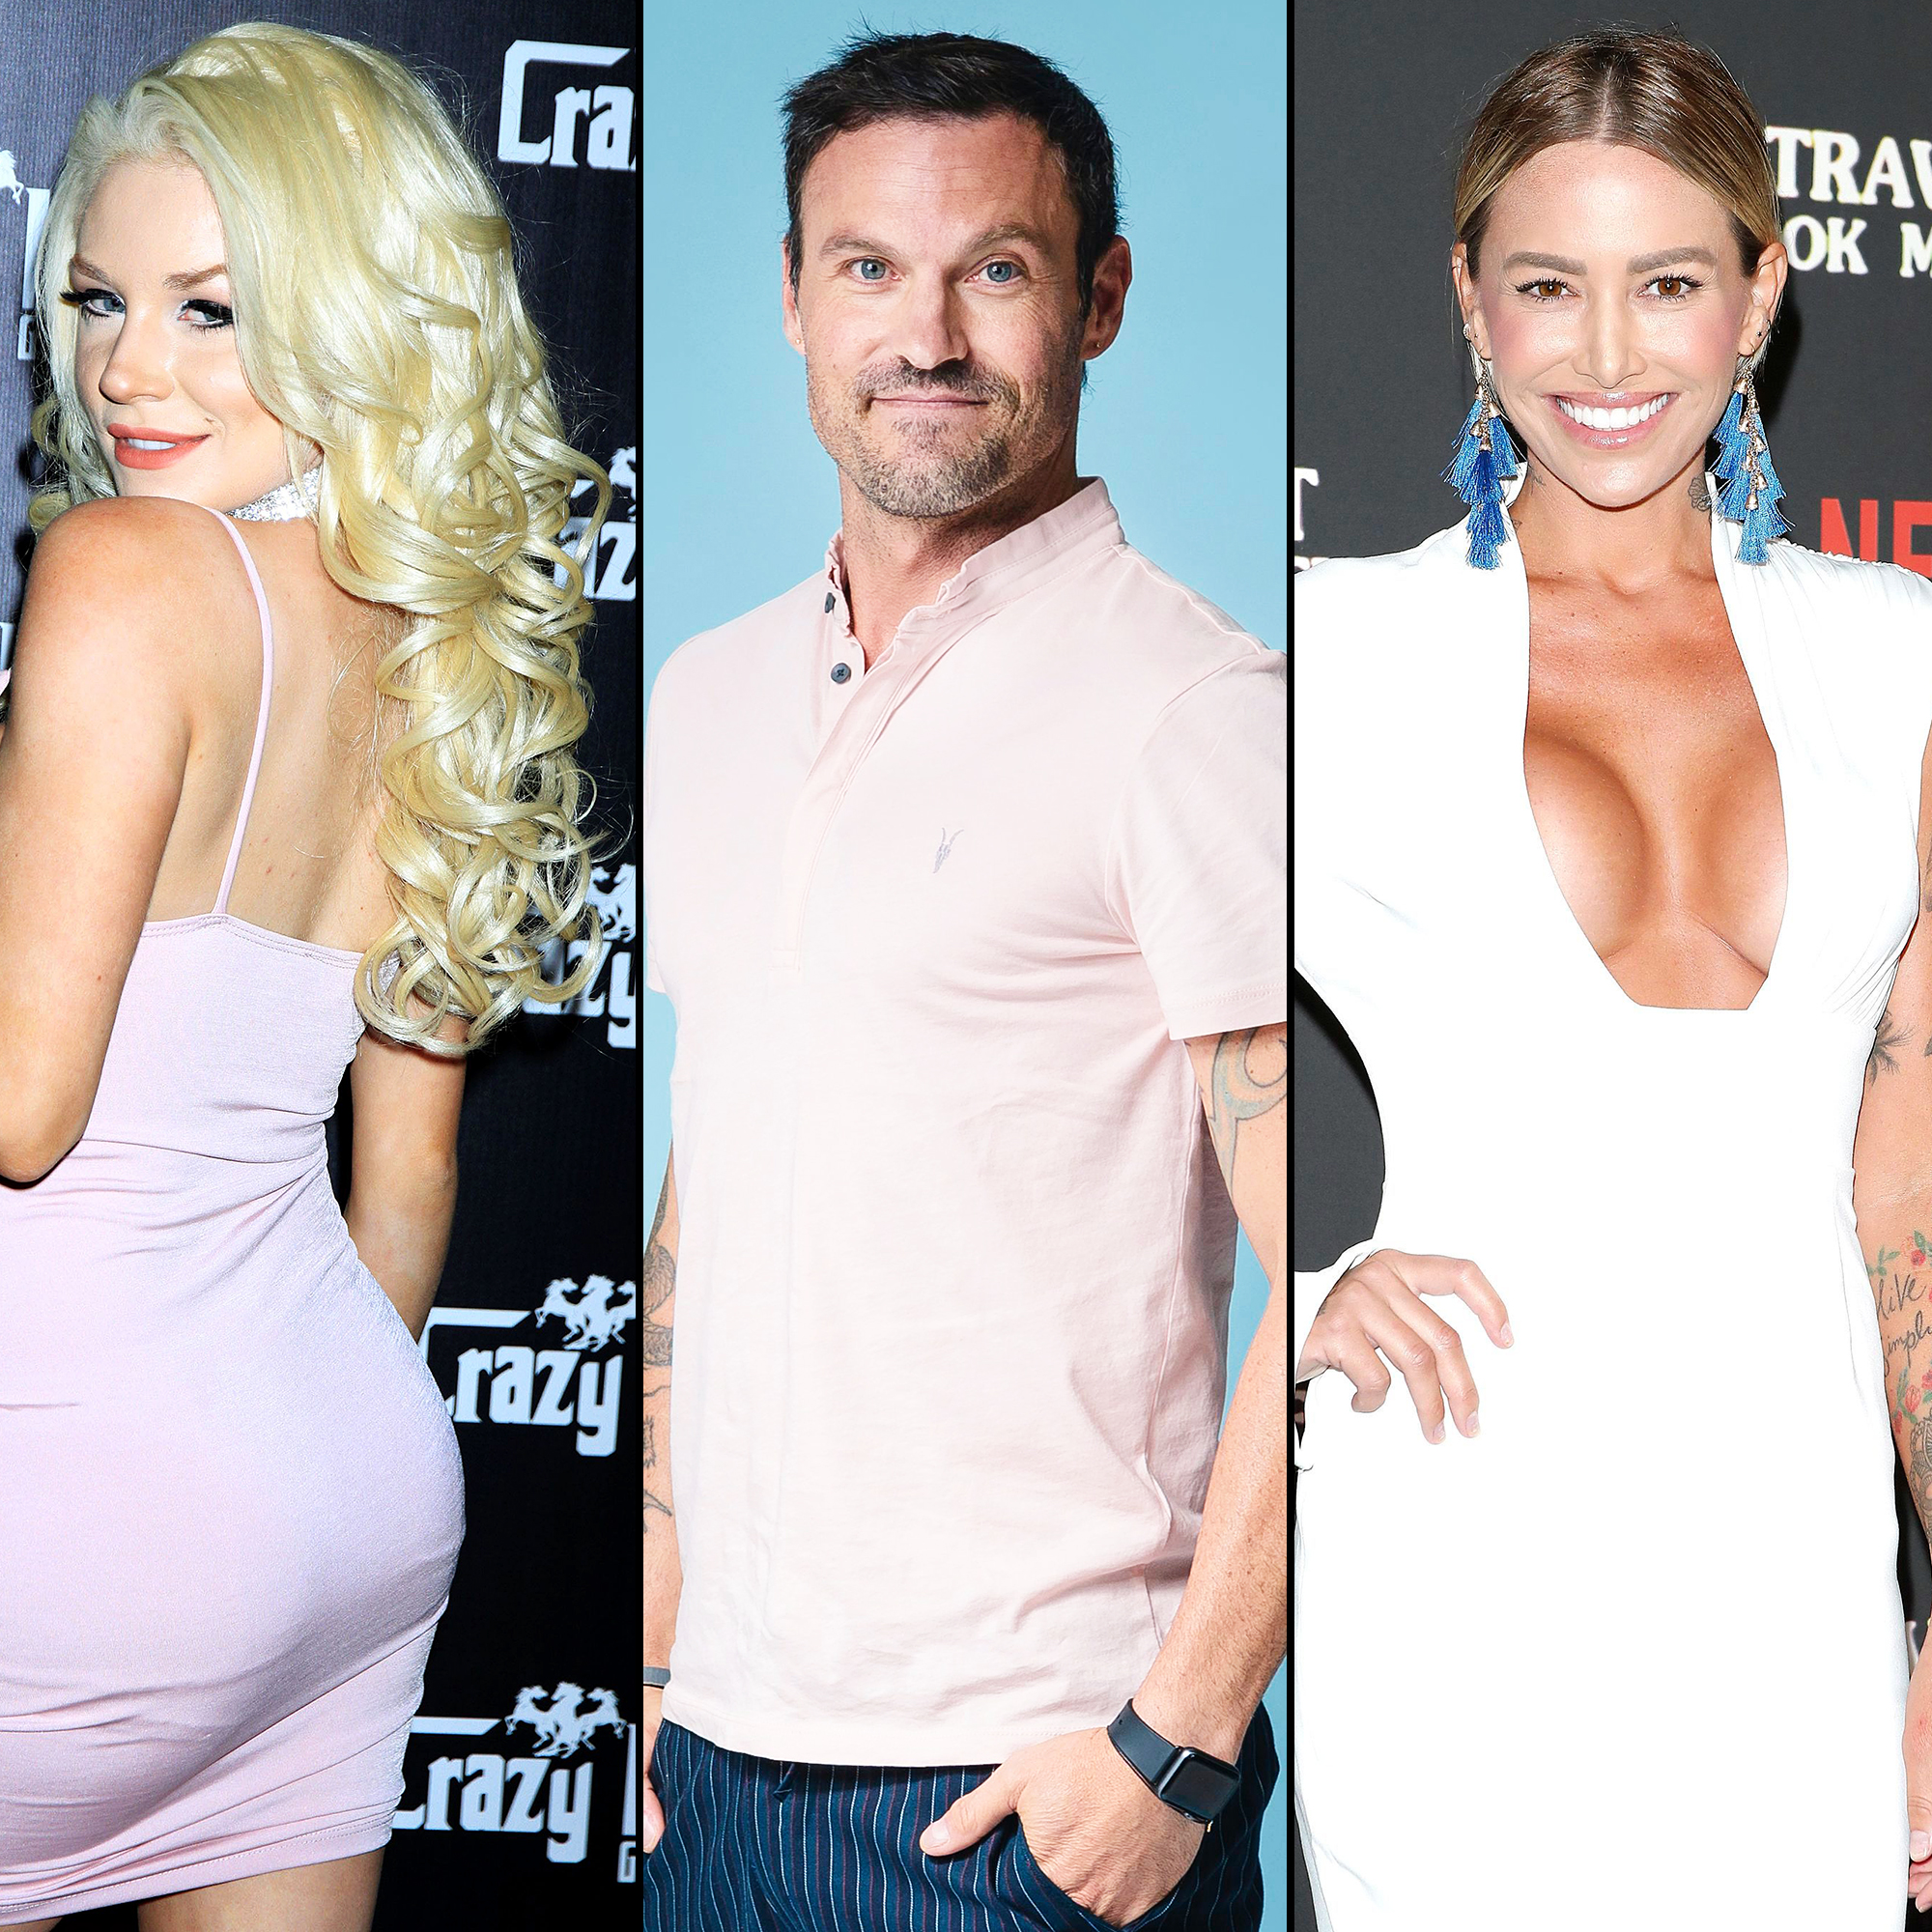 Courtney Stodden Shares Shirtless Video of Brian Austin Green Hours After His Date With Model Tina Louise